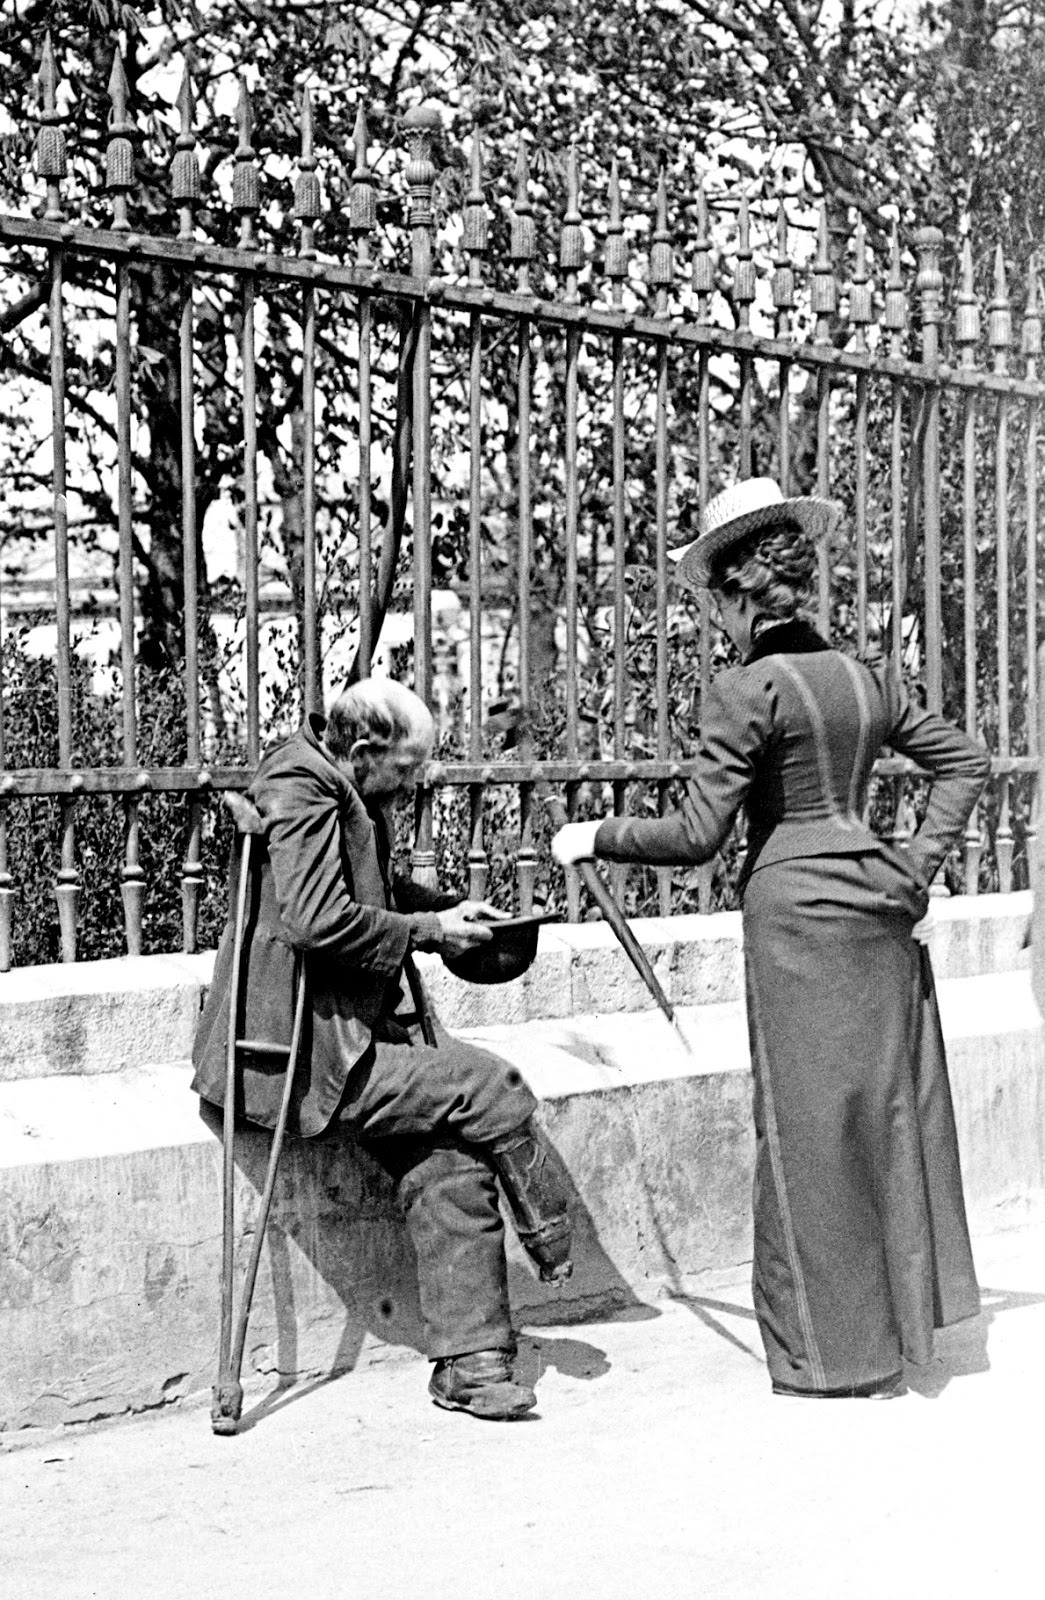 1 - A man without a foot begs on the streets of Vienna, Austria in 1911.